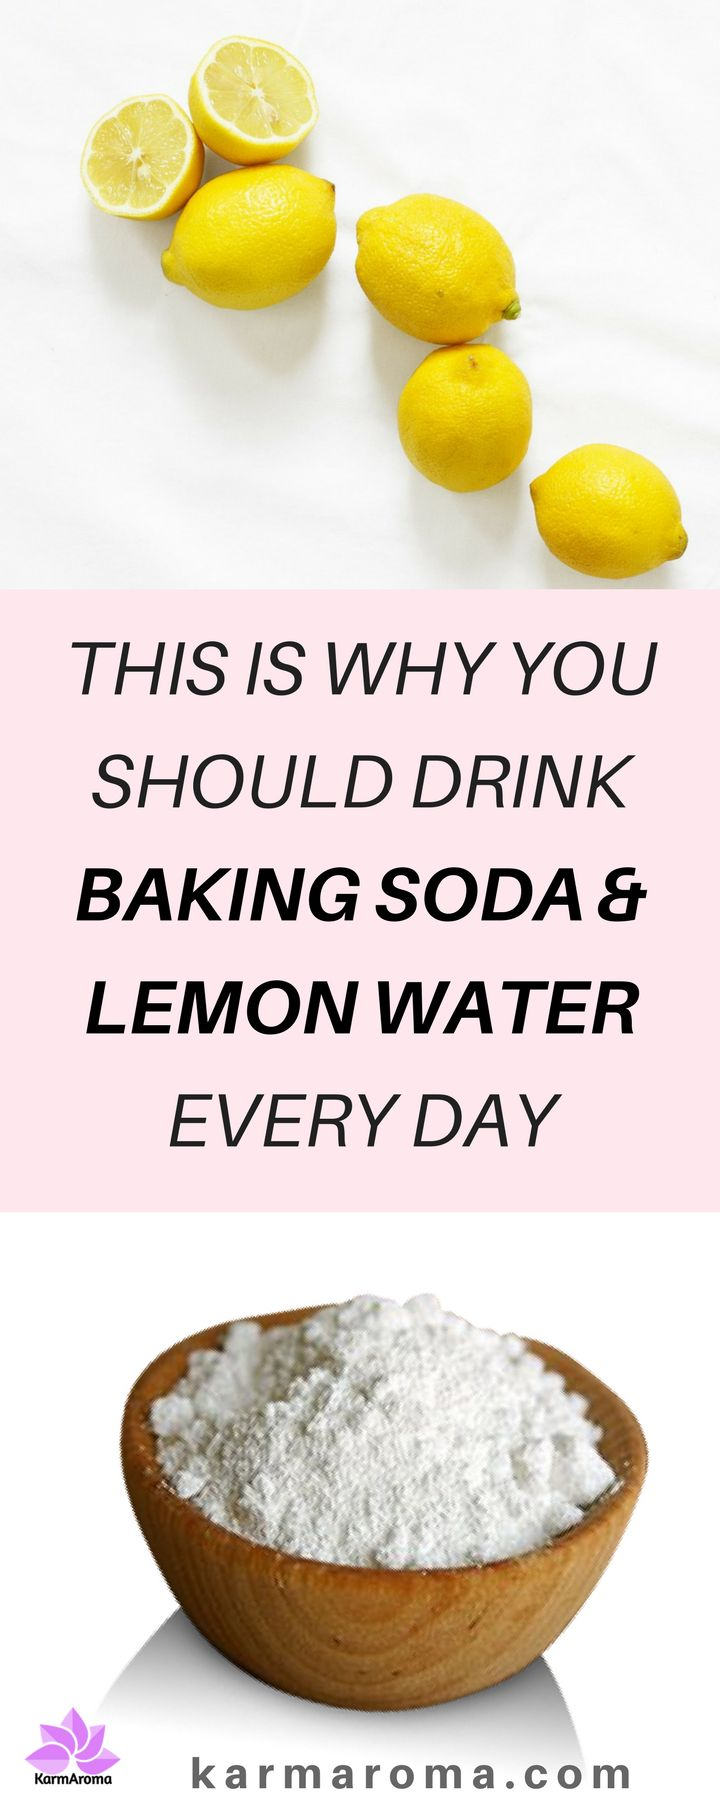 THIS IS WHY YOU SHOULD DRINK BAKING SODA & LEMON WATER EVERY DAY